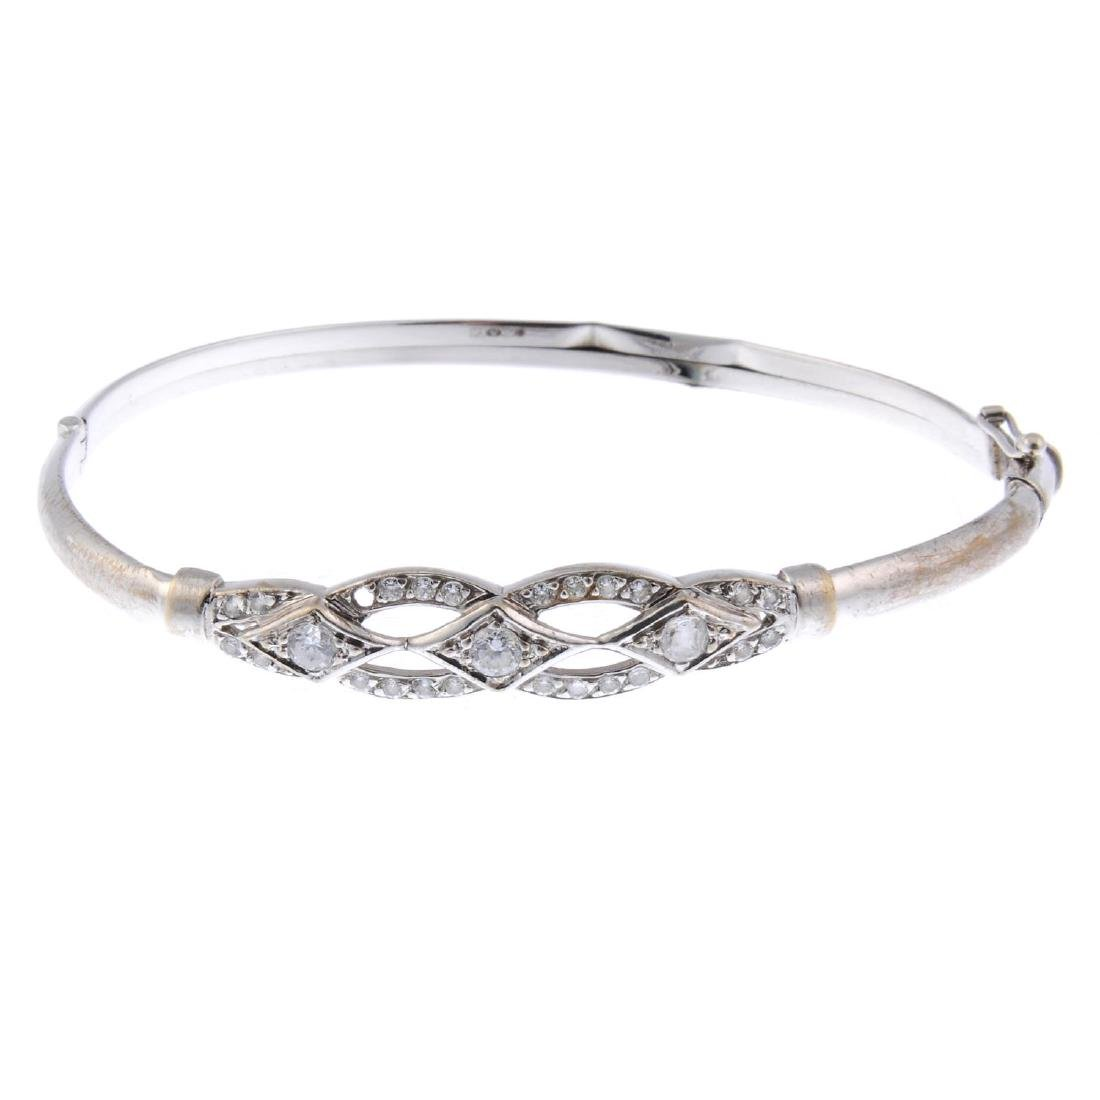 A bangle and a bracelet. The 9ct gold bangle with